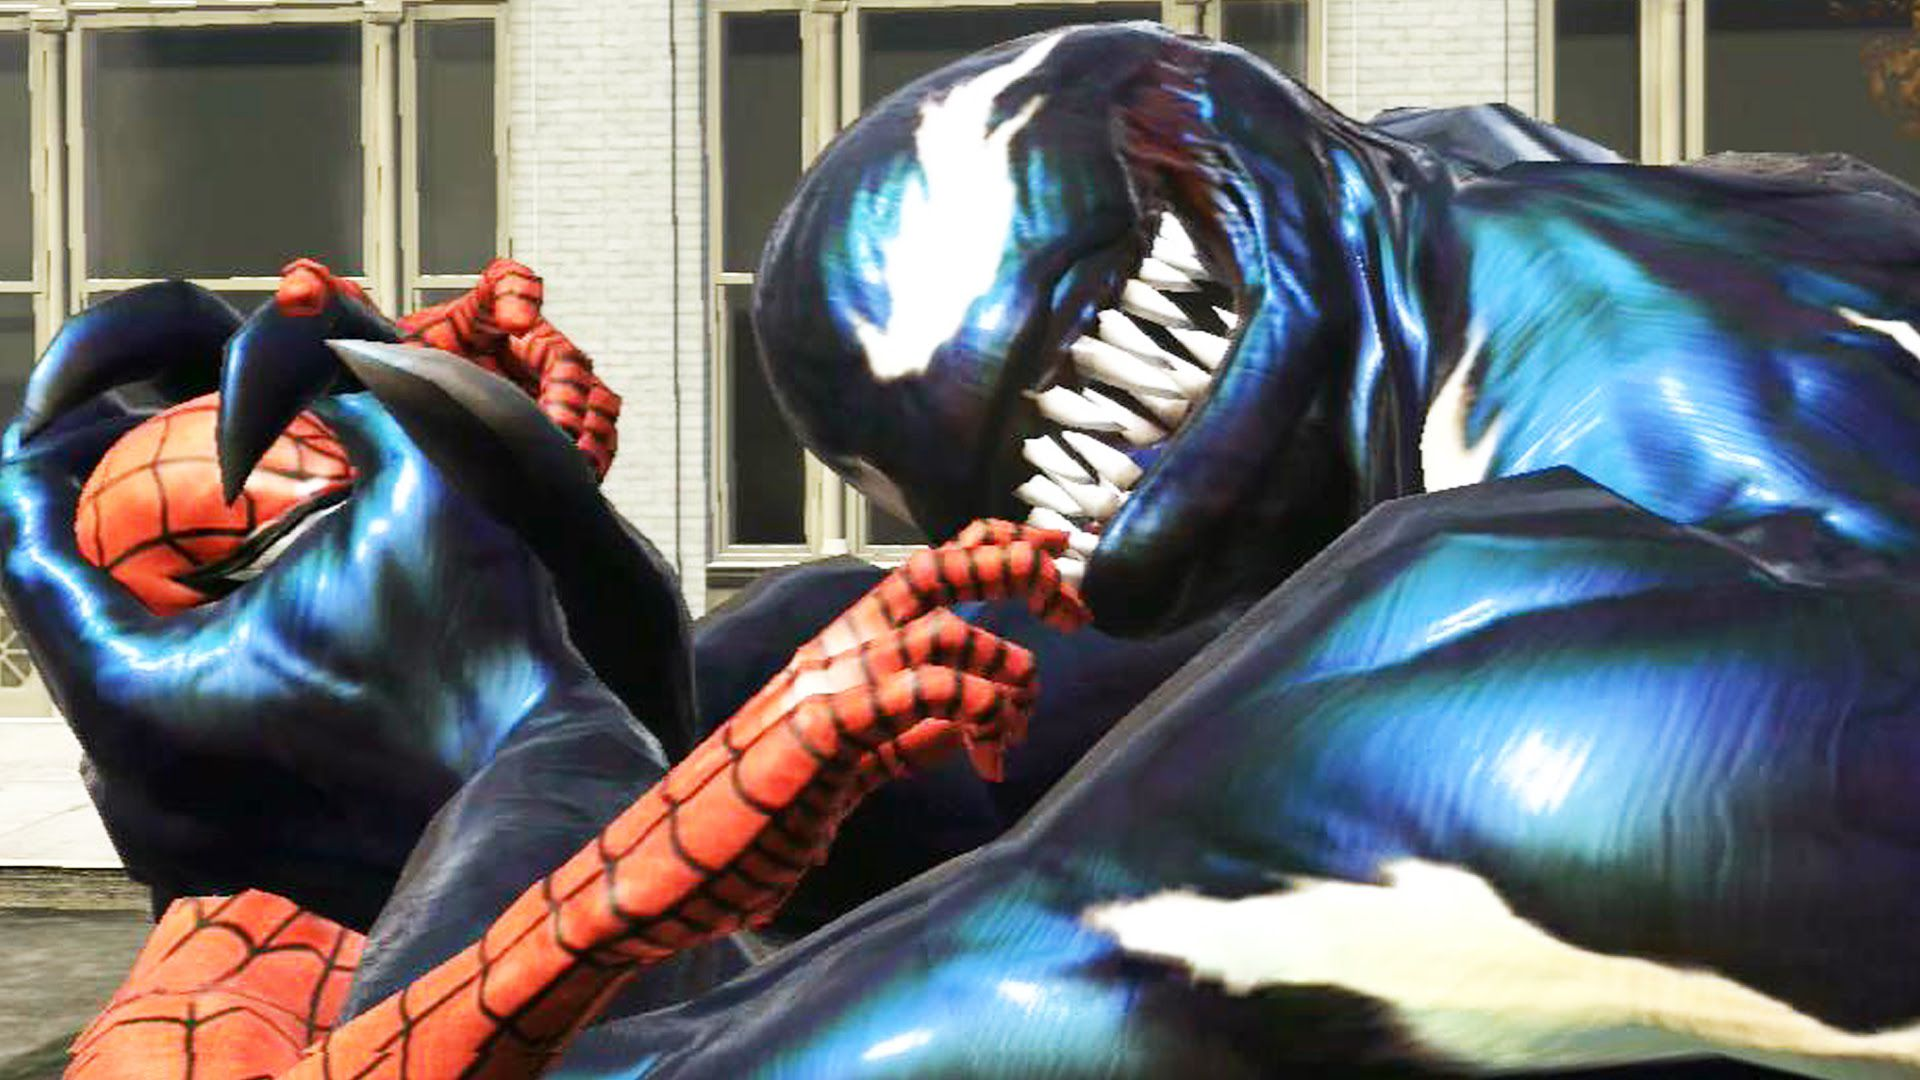 Why A Real Spider-Man Could Never Exist, According To Science